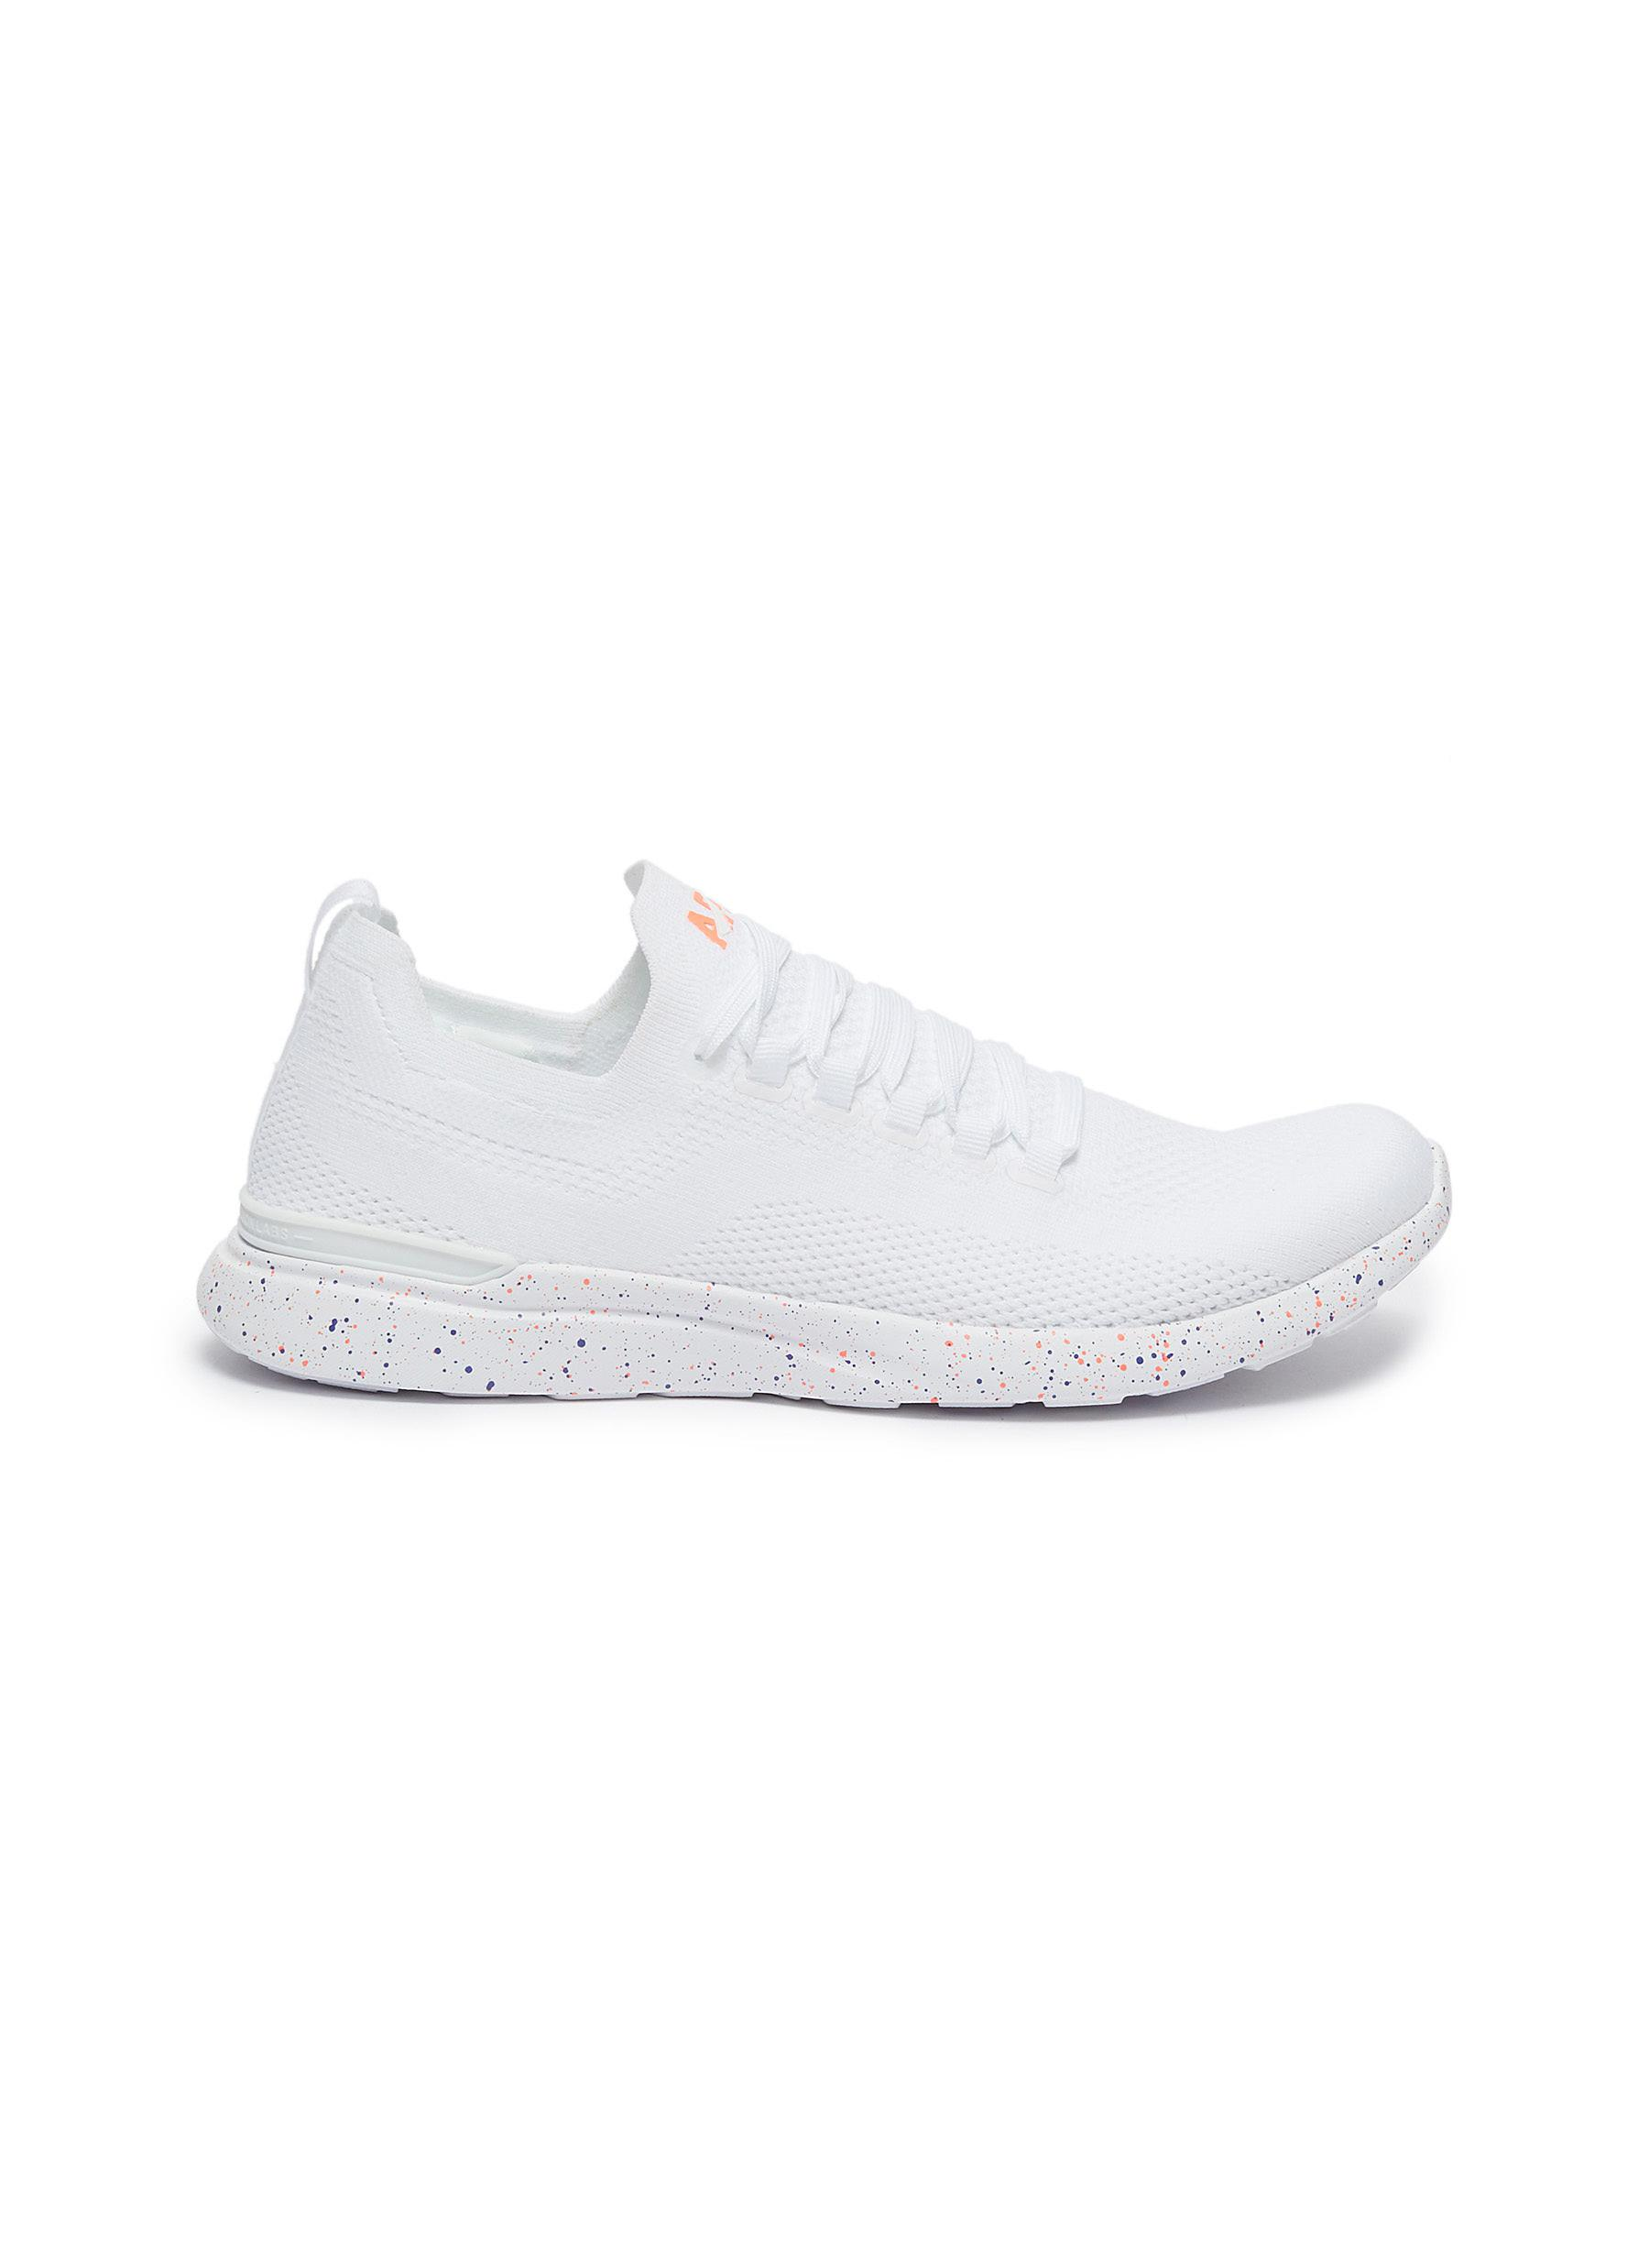 Techloom Breeze speckle print outsole knit sneakers by Athletic Propulsion Labs